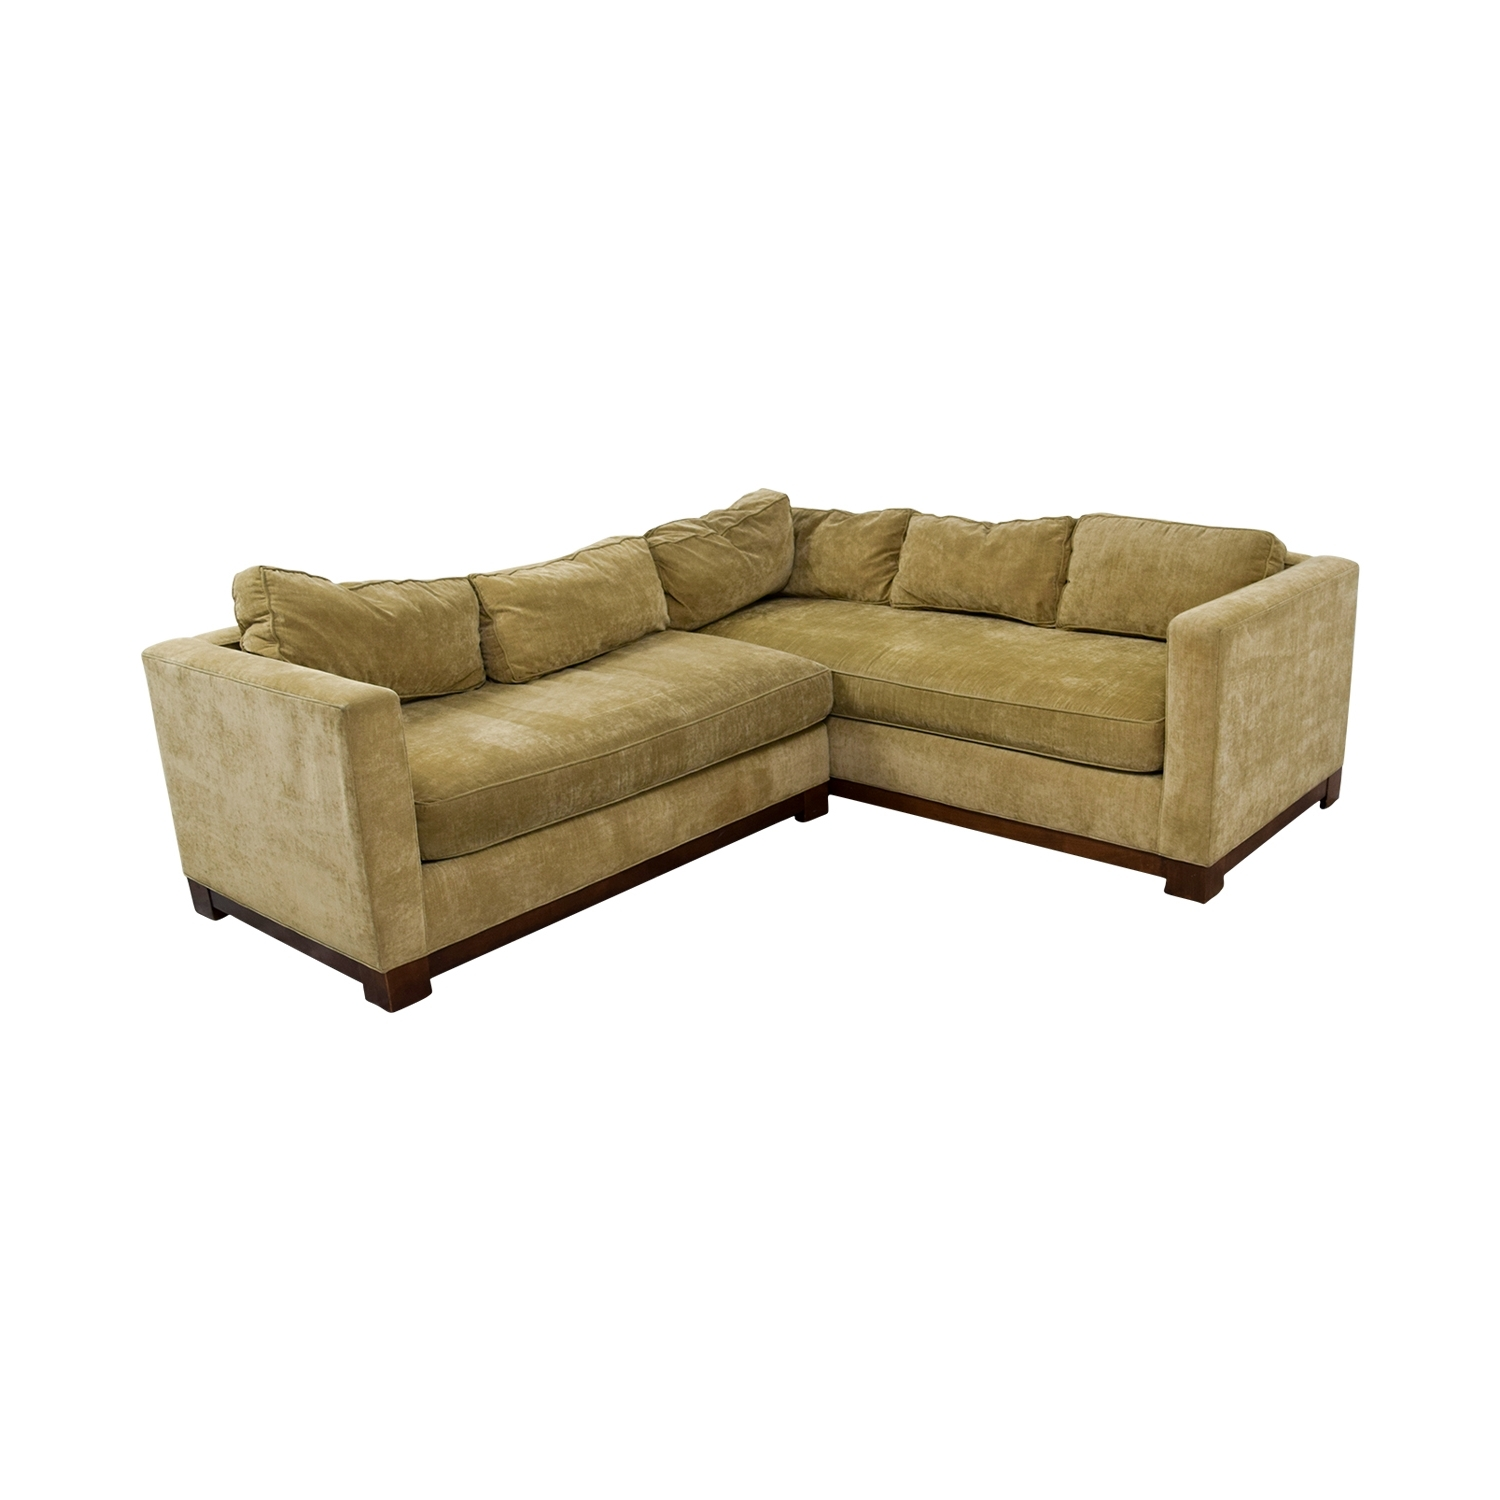 [%84% Off – Mitchell Gold + Bob Williams Mitchell Gold + Bob In Latest Gold Sectional Sofas|Gold Sectional Sofas With Preferred 84% Off – Mitchell Gold + Bob Williams Mitchell Gold + Bob|Fashionable Gold Sectional Sofas Within 84% Off – Mitchell Gold + Bob Williams Mitchell Gold + Bob|Well Known 84% Off – Mitchell Gold + Bob Williams Mitchell Gold + Bob Intended For Gold Sectional Sofas%] (View 8 of 15)